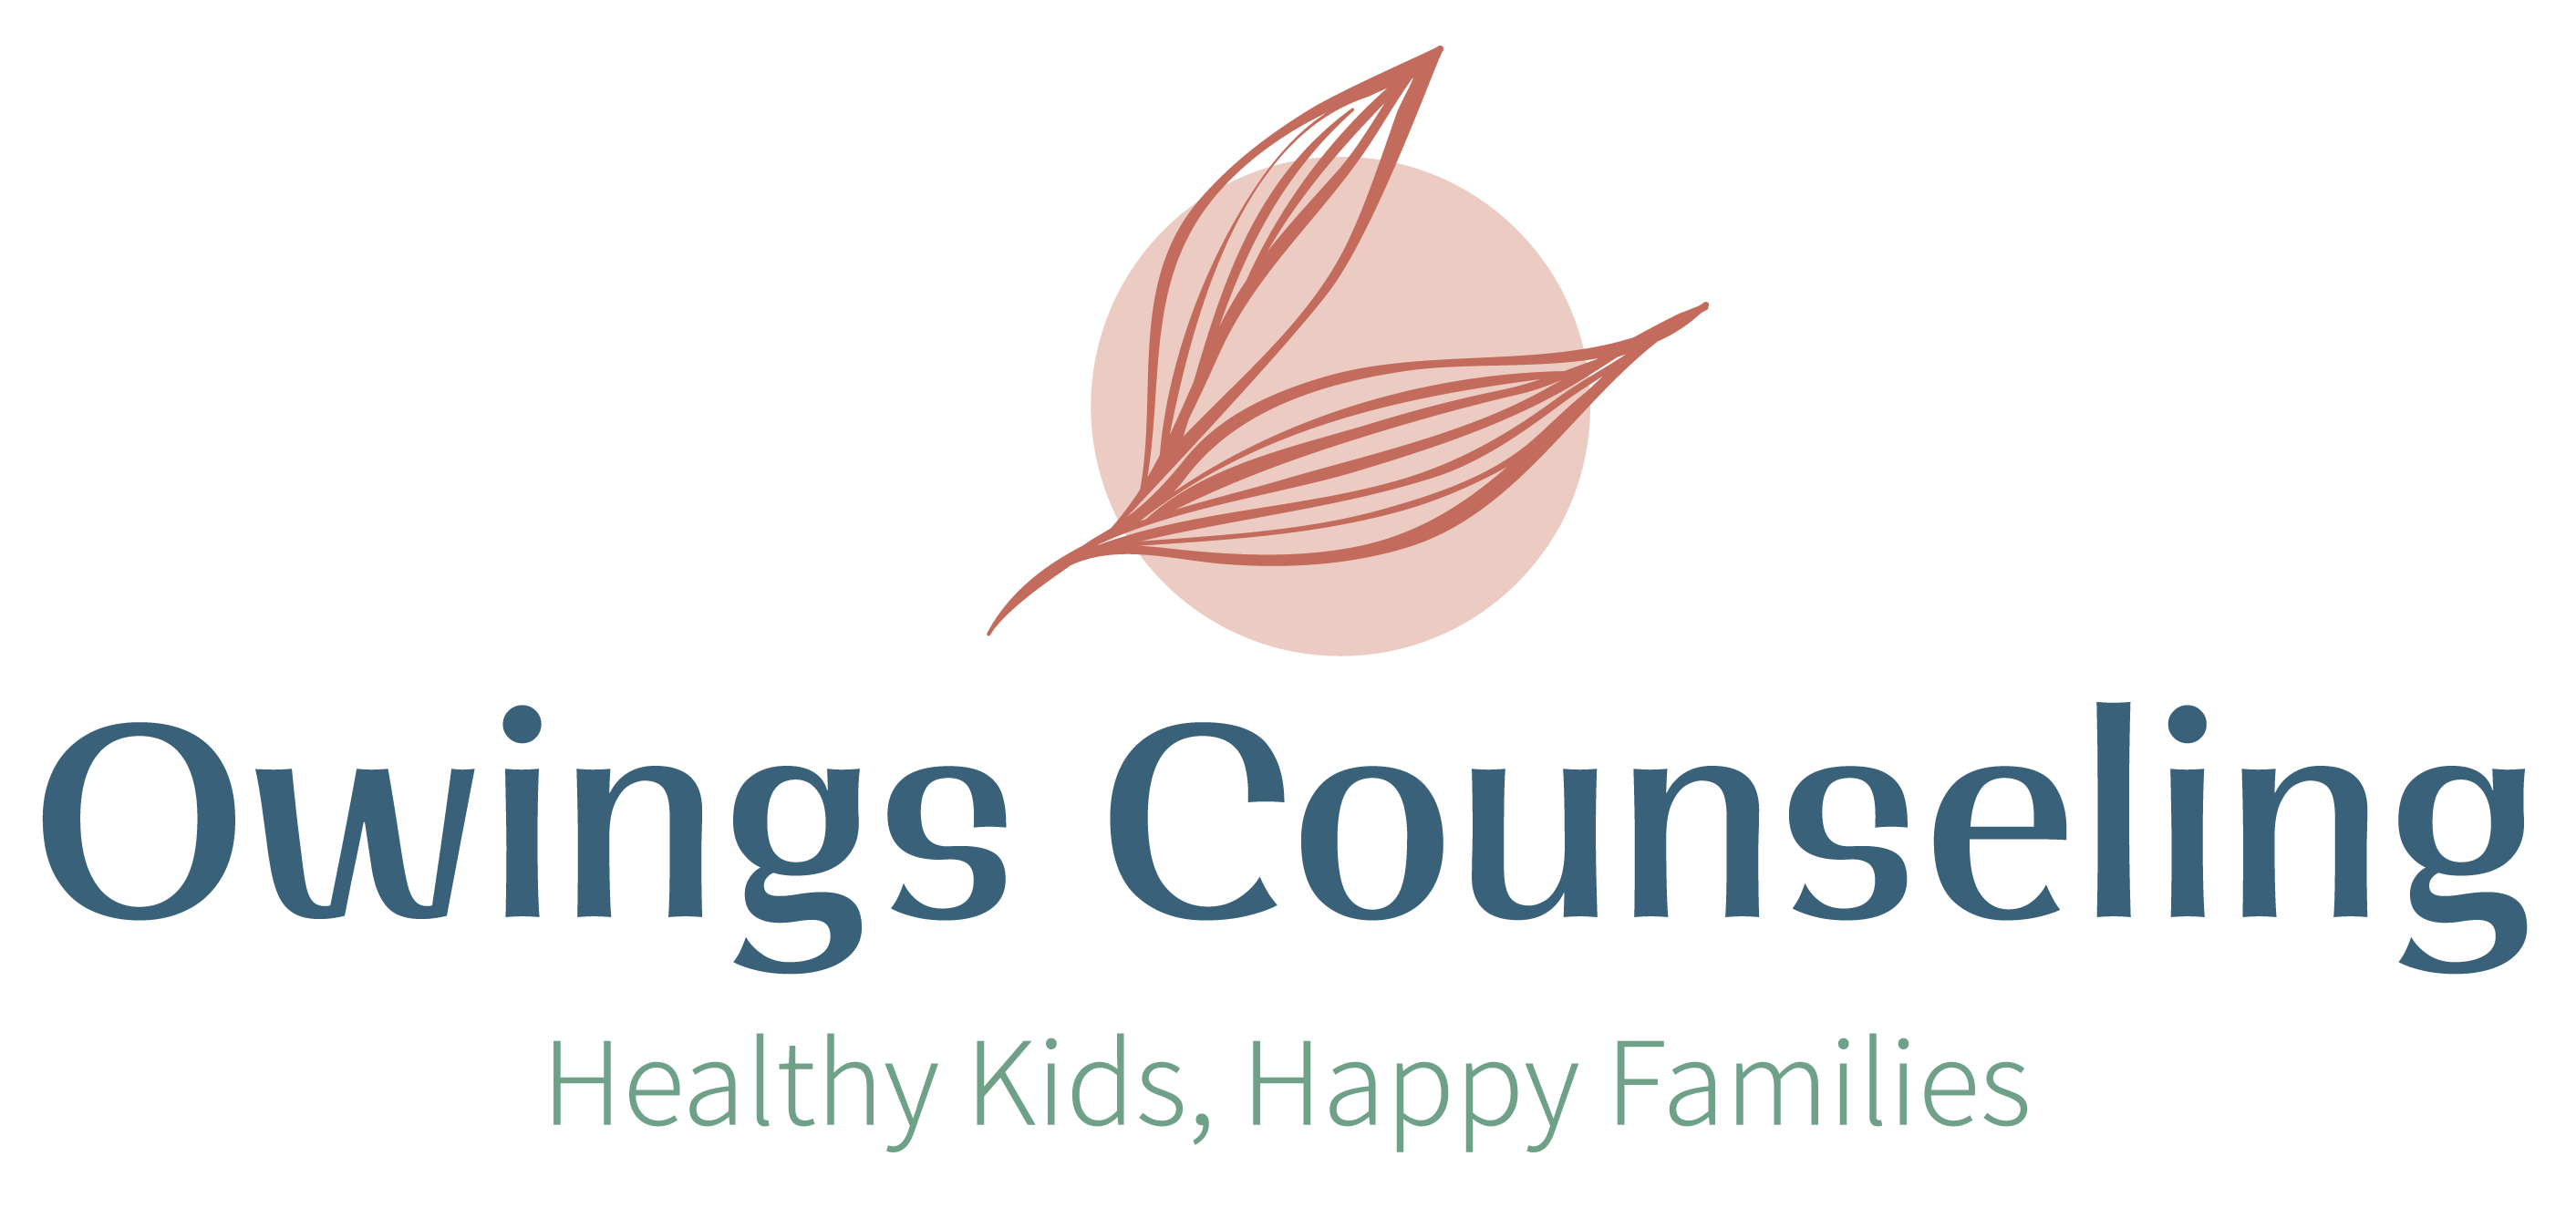 Owings Counseling, LLC